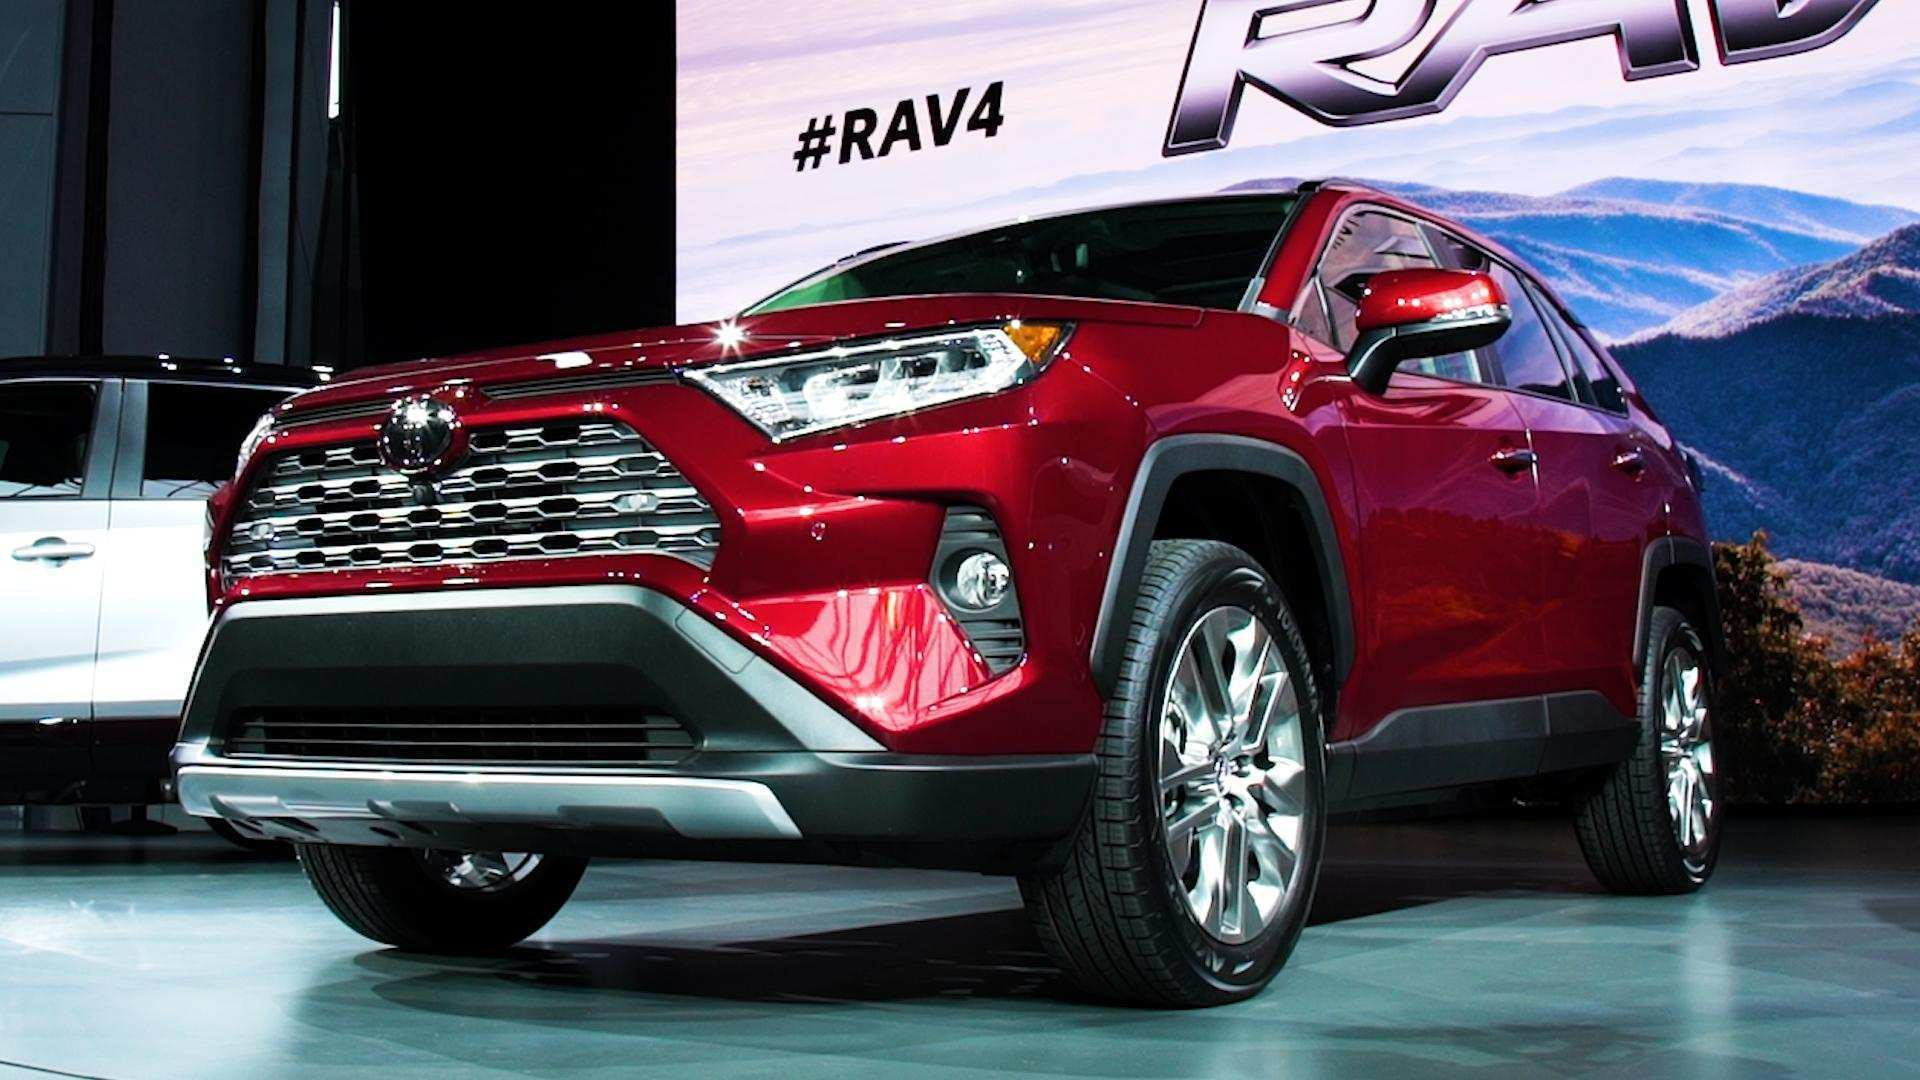 86 The Best Toyota Rav4 Hybrid 2019 Specs And Review Prices for Best Toyota Rav4 Hybrid 2019 Specs And Review